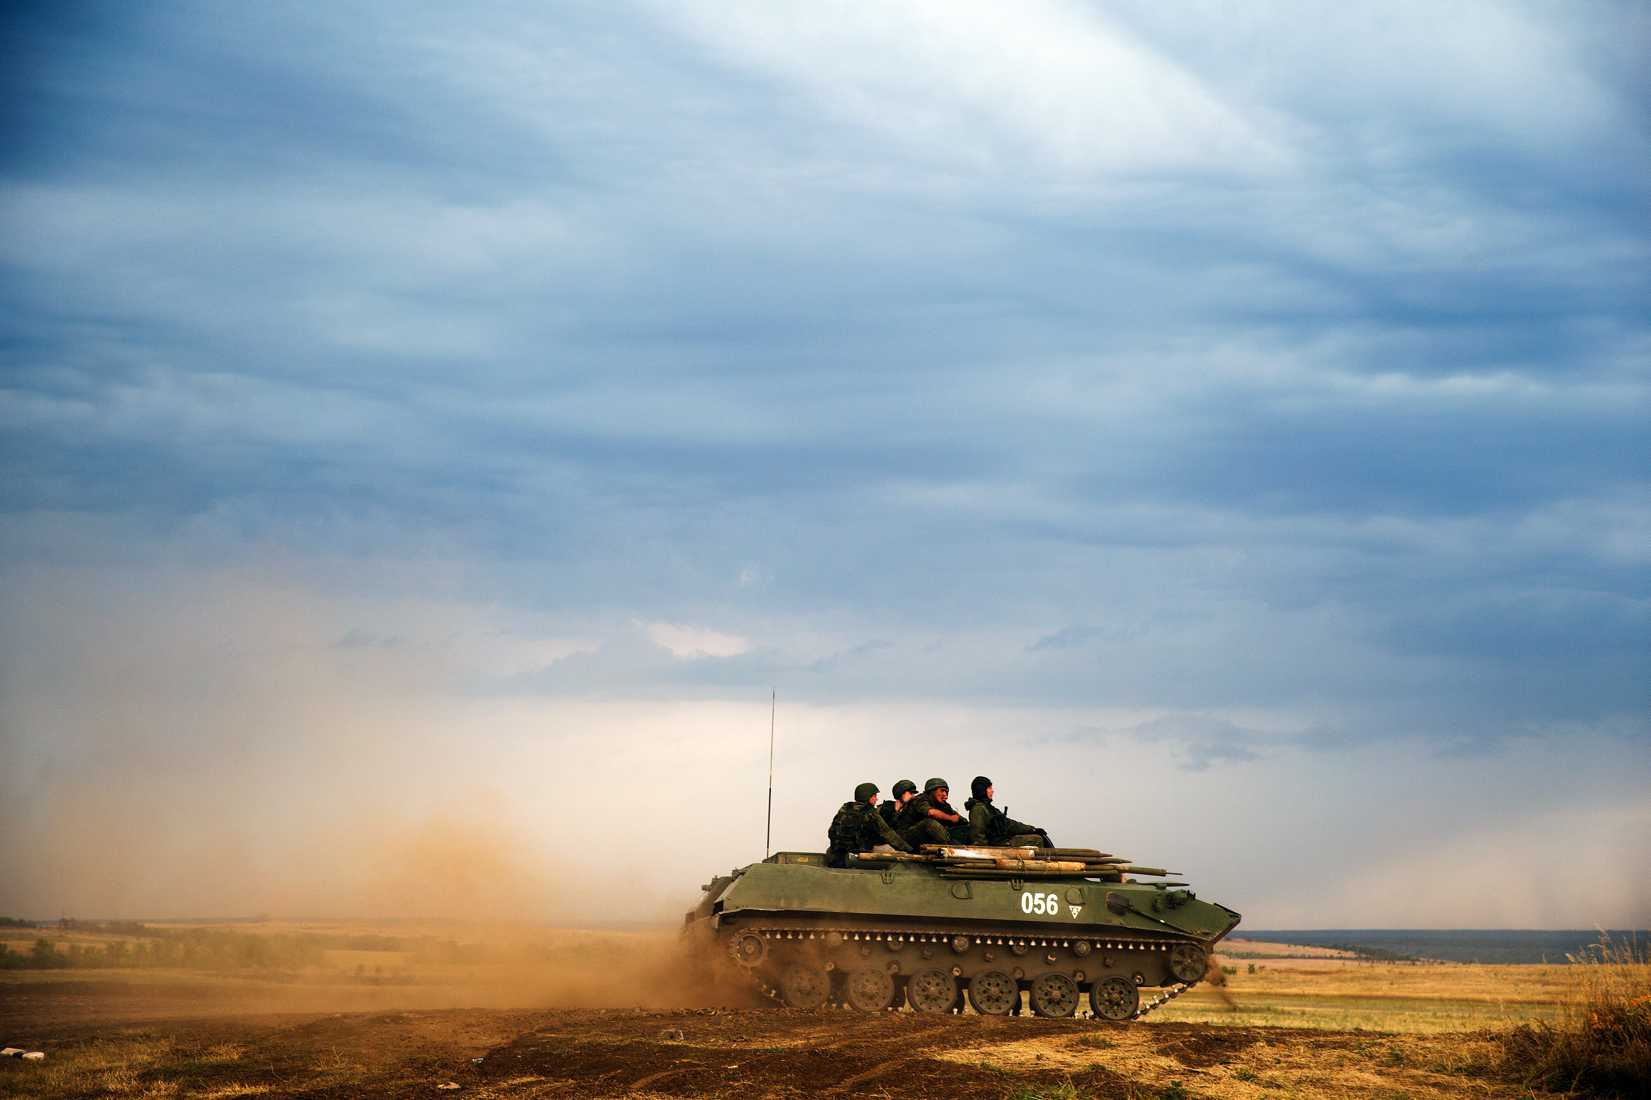 A Russian APC moves in a field in about 10 kilometers (6.2 miles) from the Russia-Ukrainian border control point at Russian town of Donetsk, Rostov-on-Don region on Aug. 18, 2014.